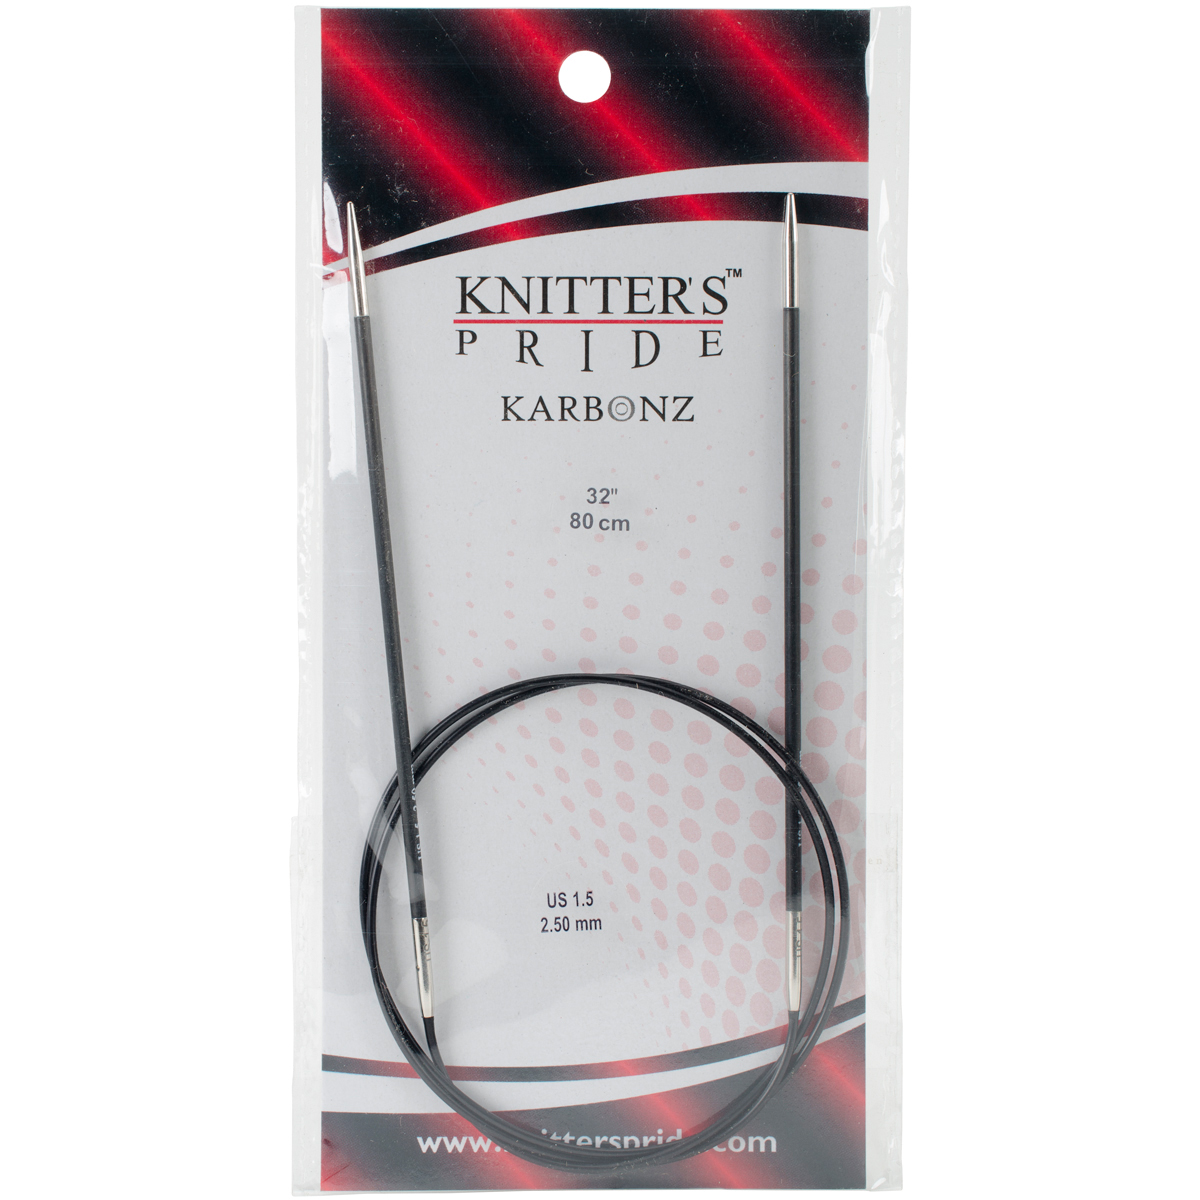 Knitter's Pride-Karbonz Fixed Circular Needles 32-Size 1.5/2.5mm